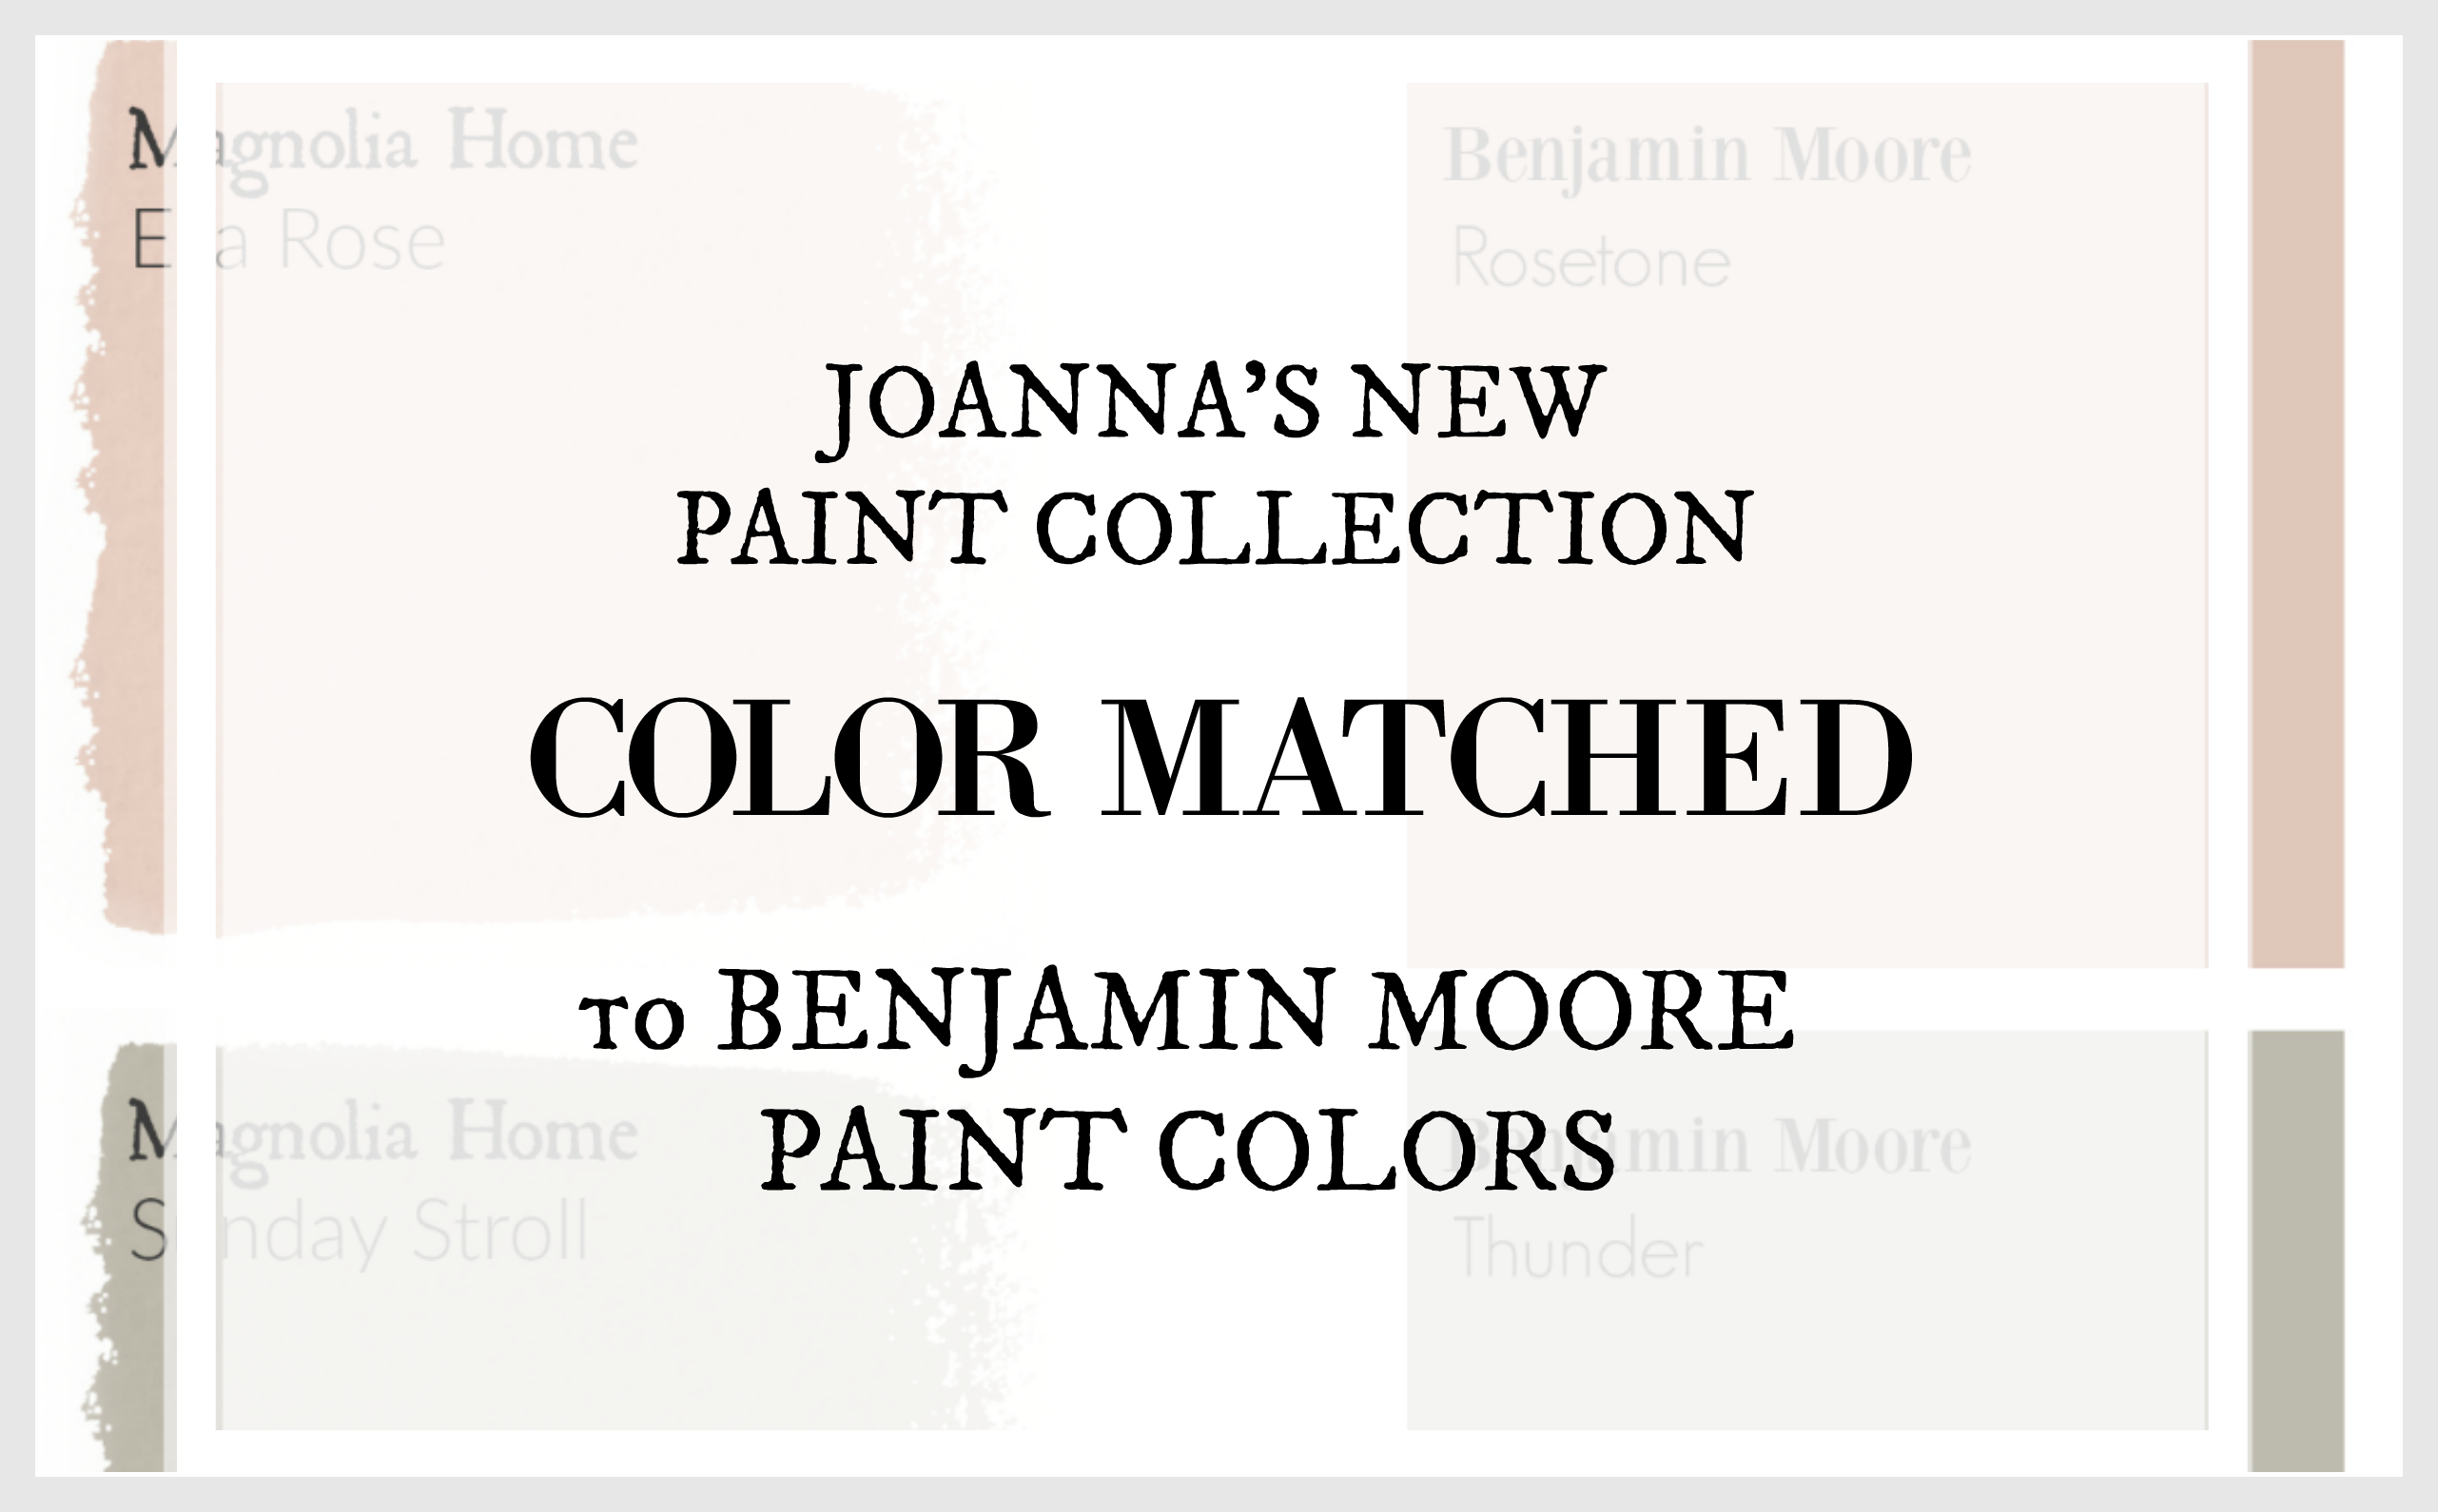 Benjamin Moore Bedroom Colors Fixer Upper Paint Colors Magnolia Home Paint Color Matched To